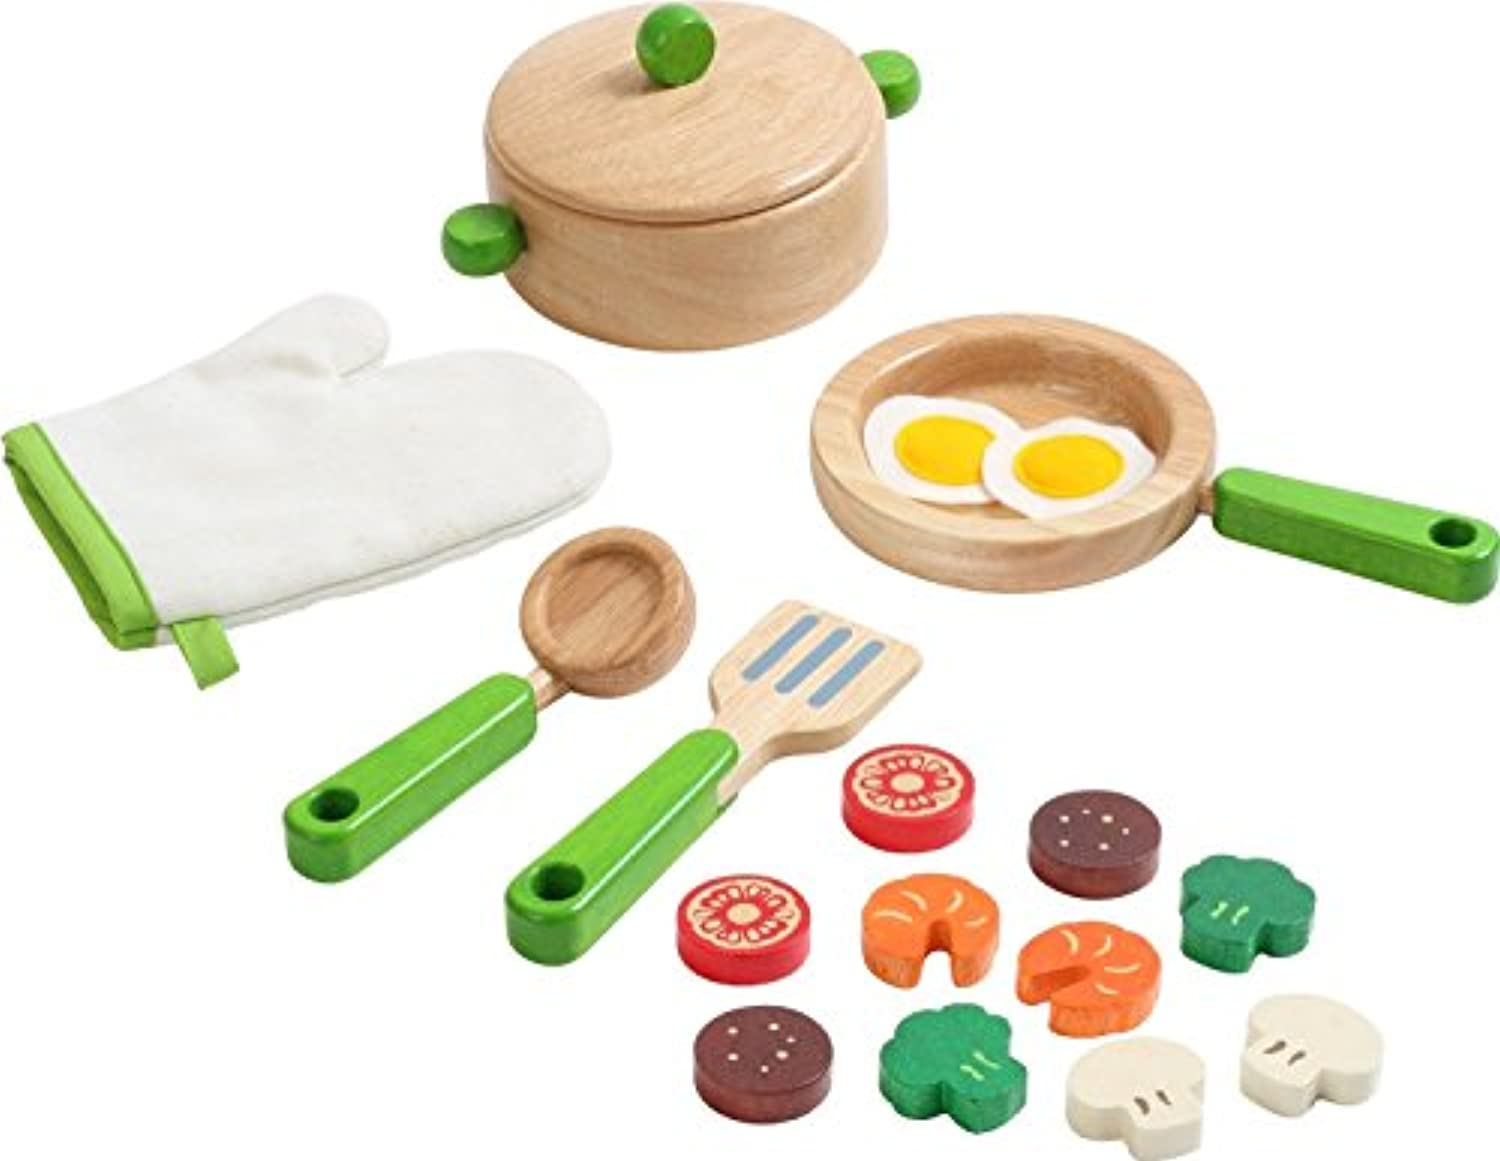 Kitchenware set Kitchenware toys